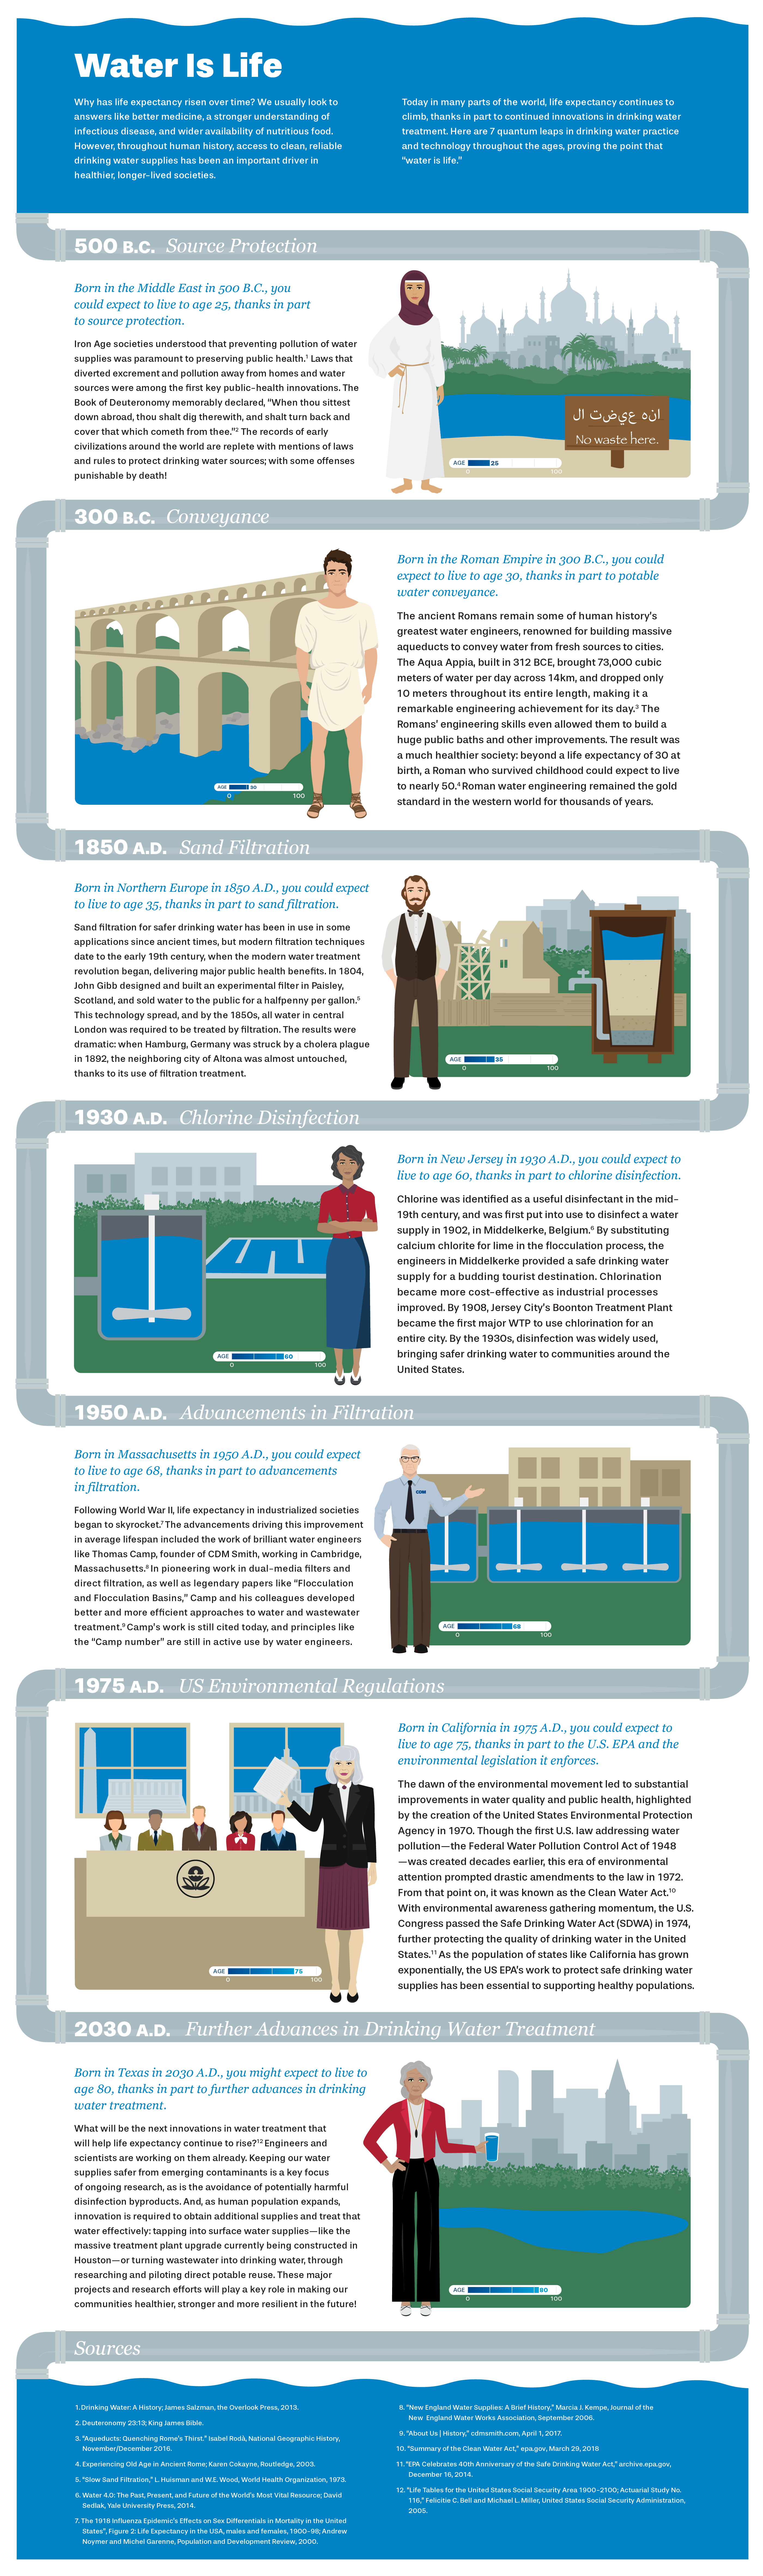 Water Is Life Infographic